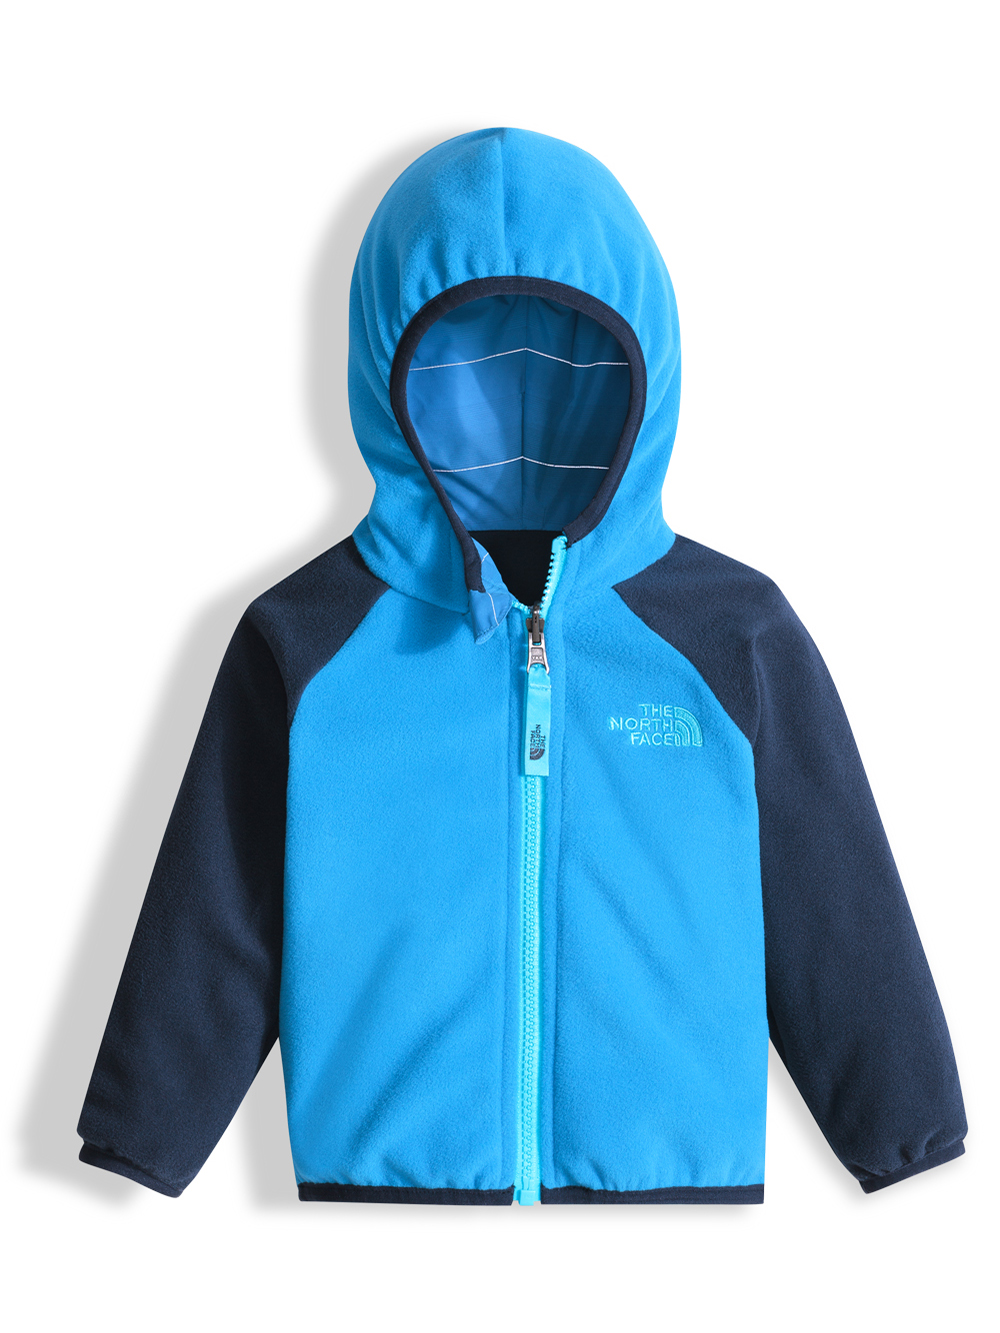 The North Face Baby Boys' Reversible Breezeway Wind Jacket - clear lake blue ombre reflective stripe, 12 - 18 months